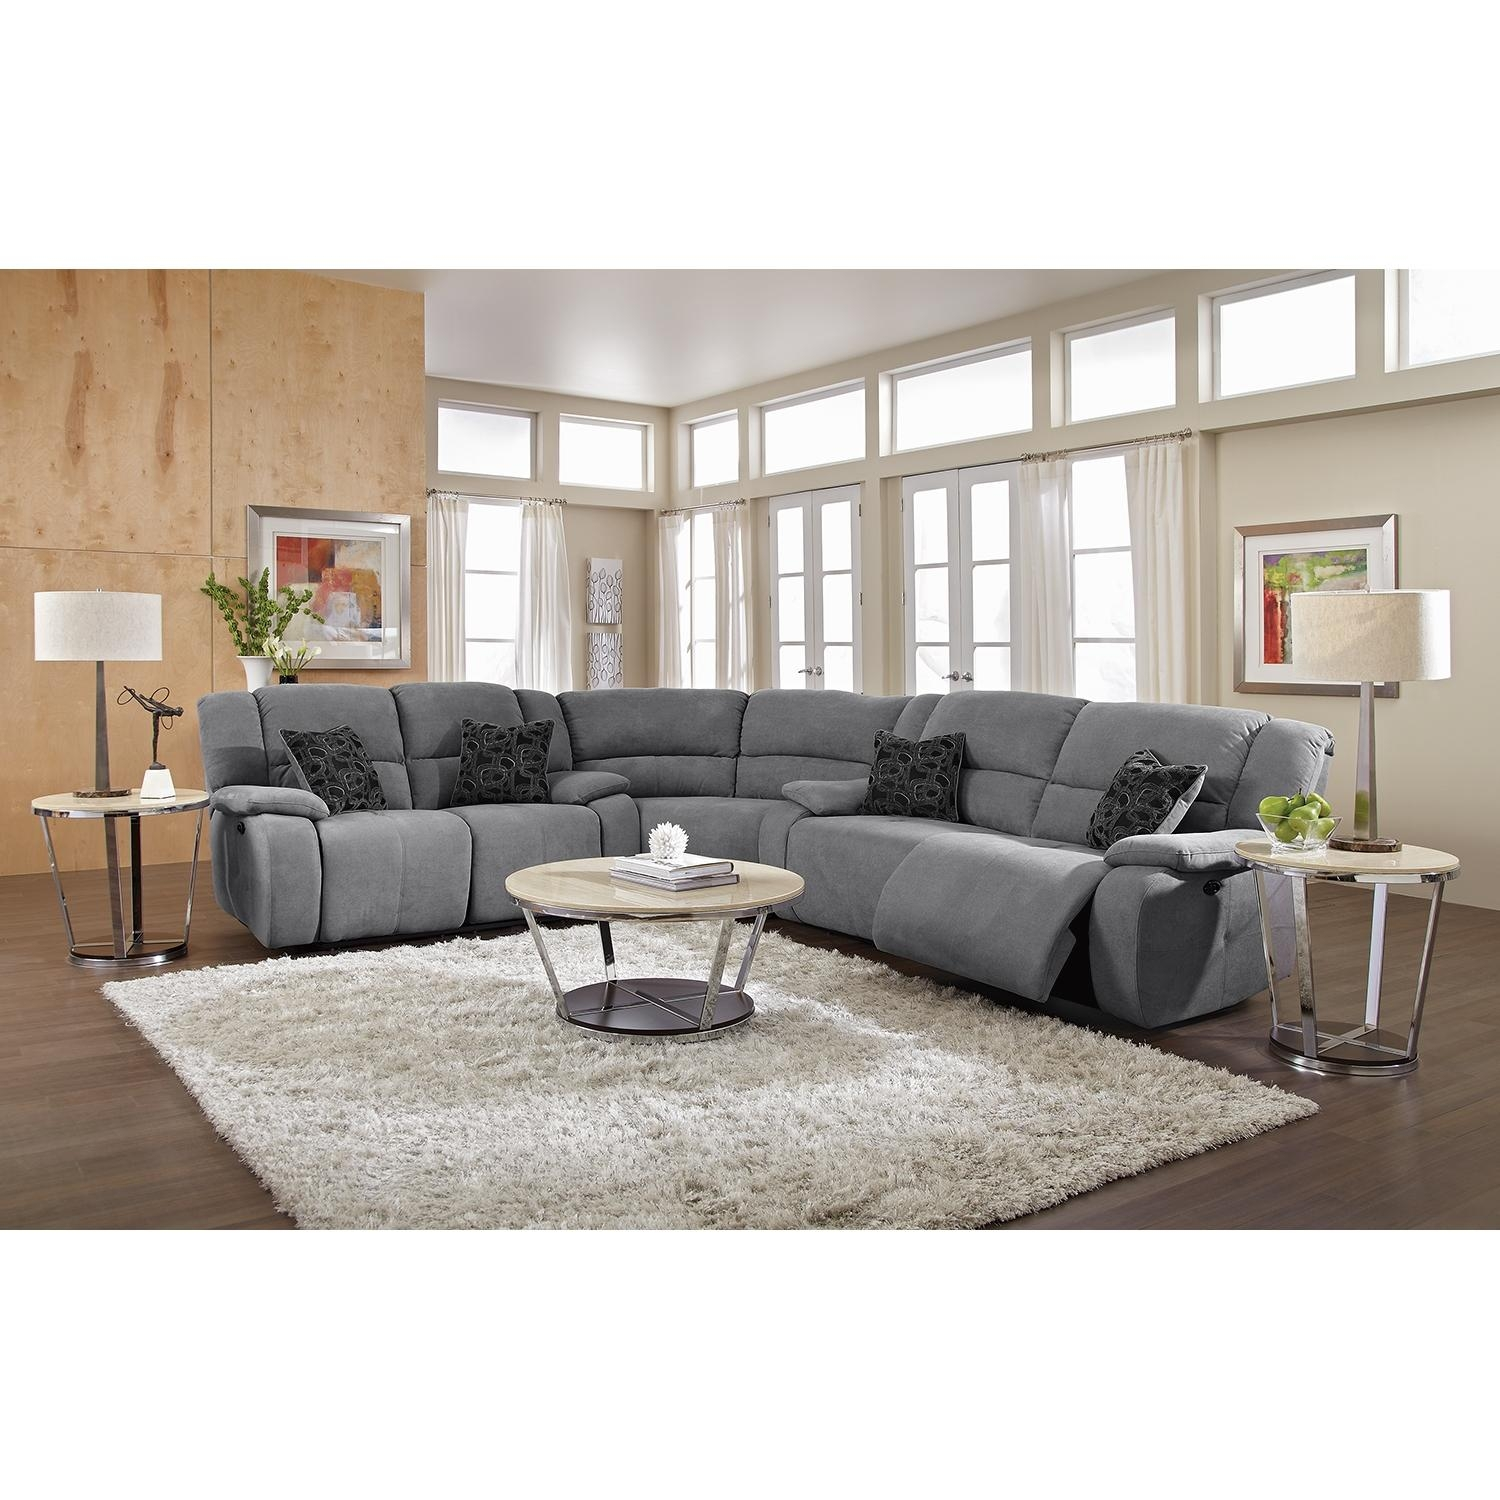 Furniture: Lazy Boy Sectional | Sectional Couches With Recliners With Sleeper Recliner Sectional (View 6 of 20)